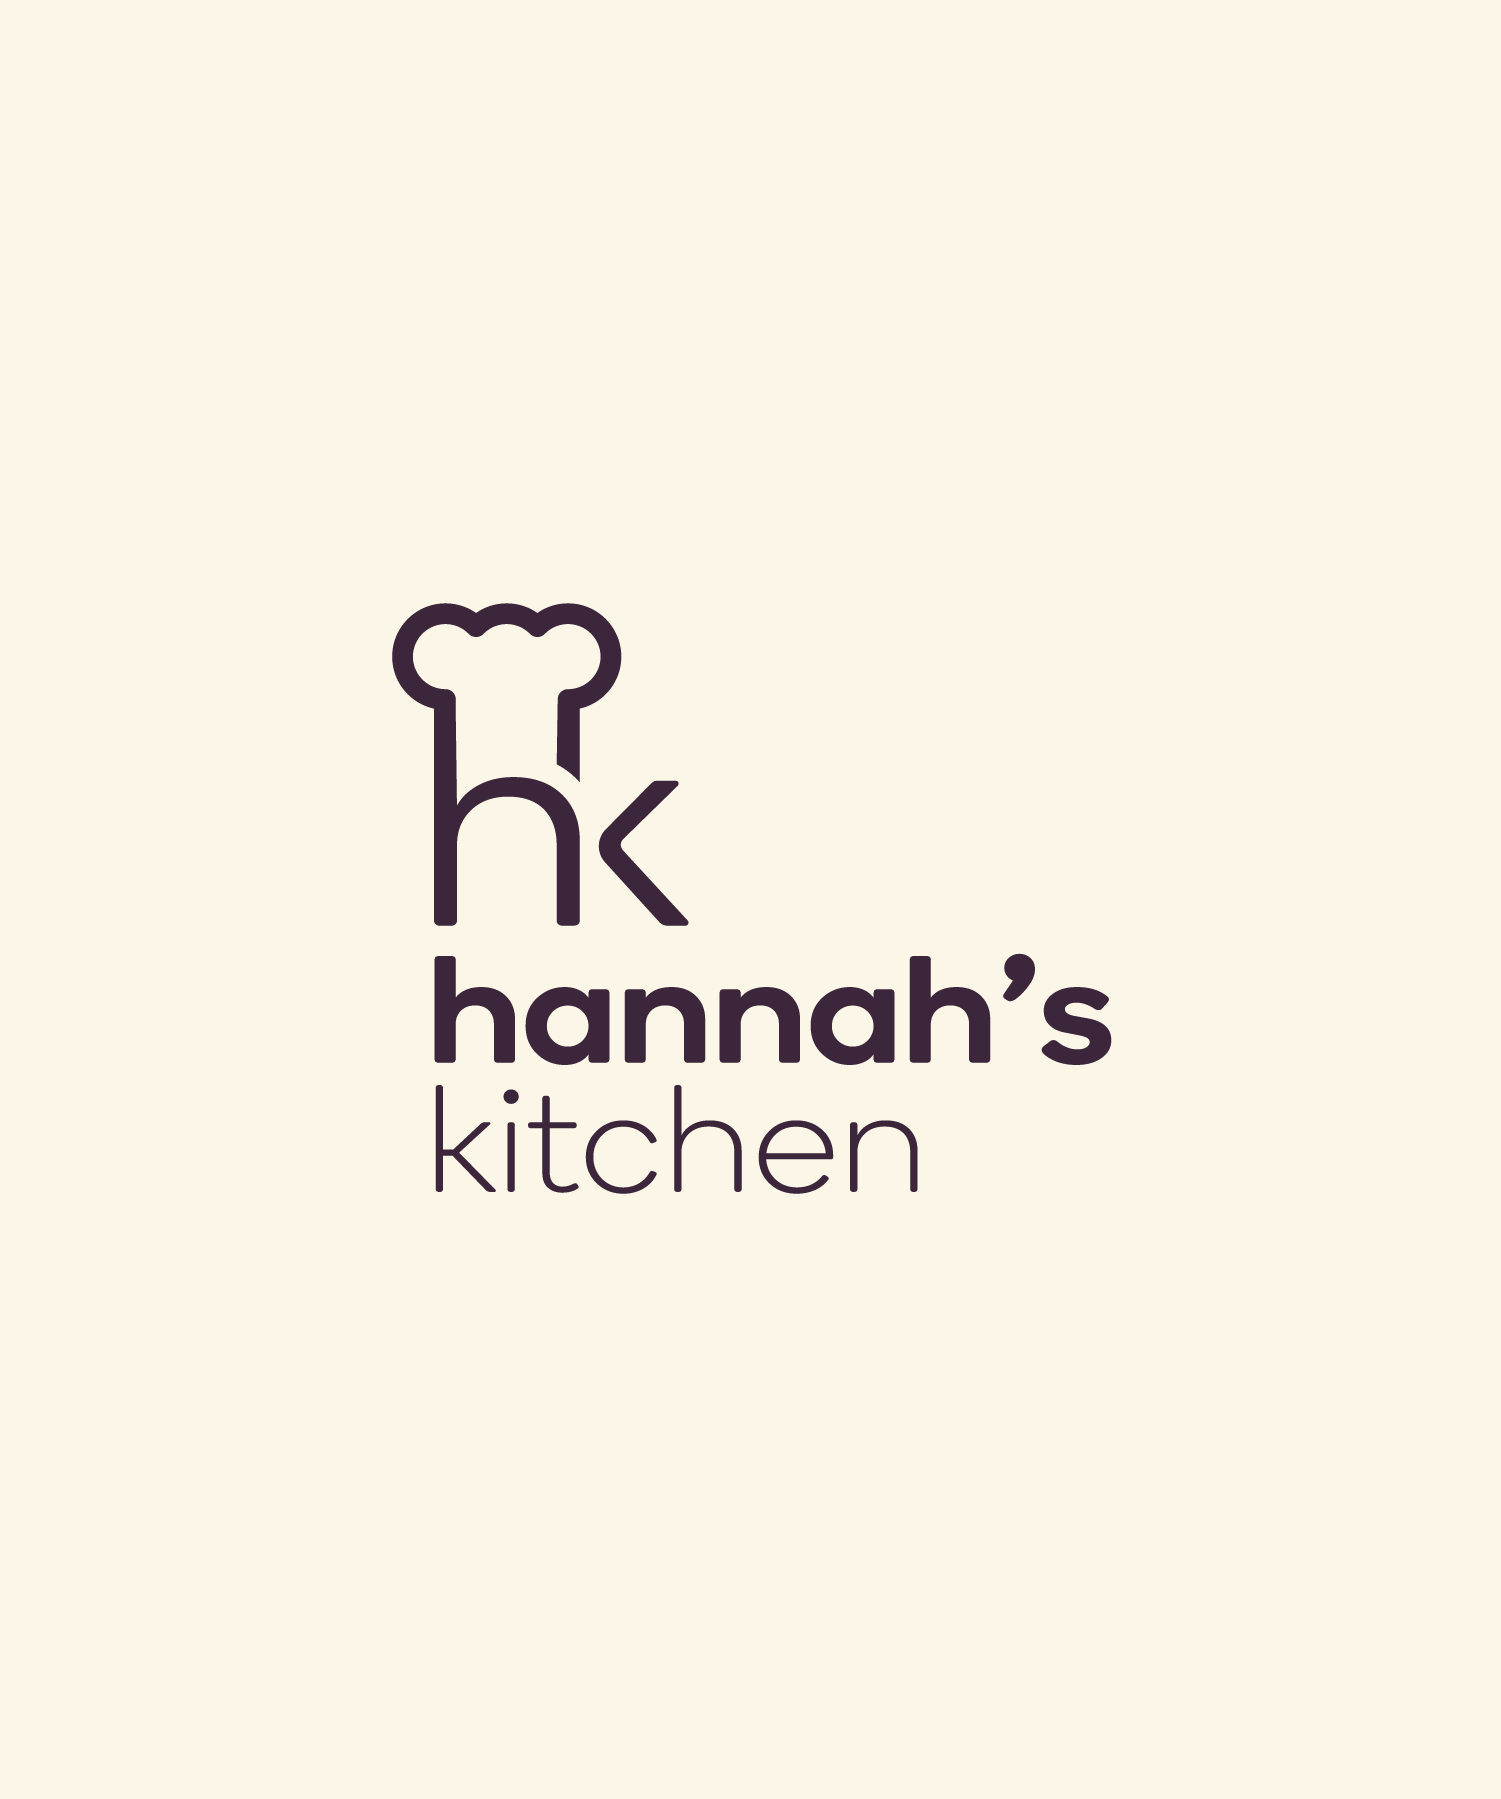 Logo design  - Hannah's Kitchen